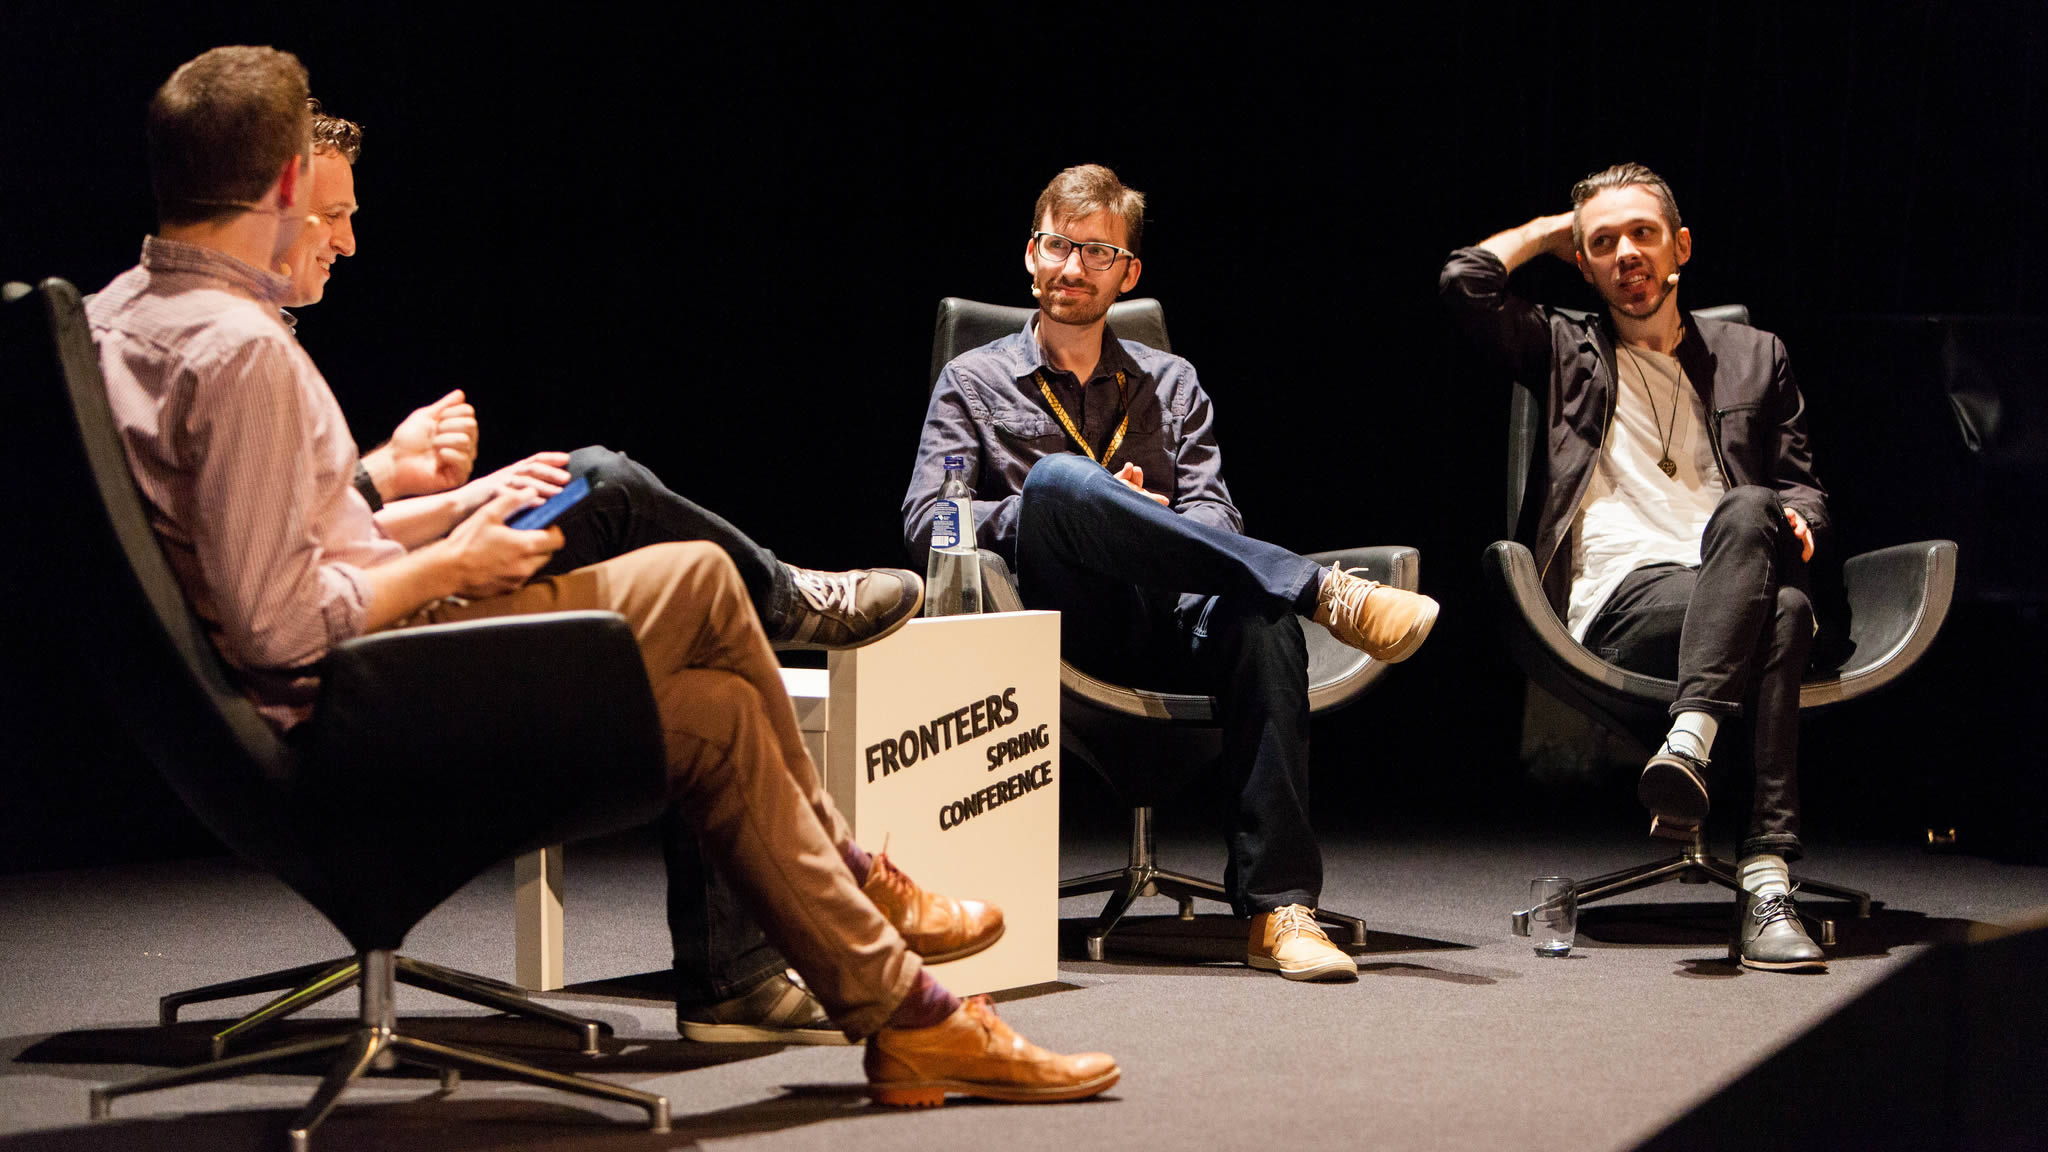 Panel discussion about Visual Performance - Hawksworth, Ahlin, Bakaus, Stein. Photo by Peter Peerdeman